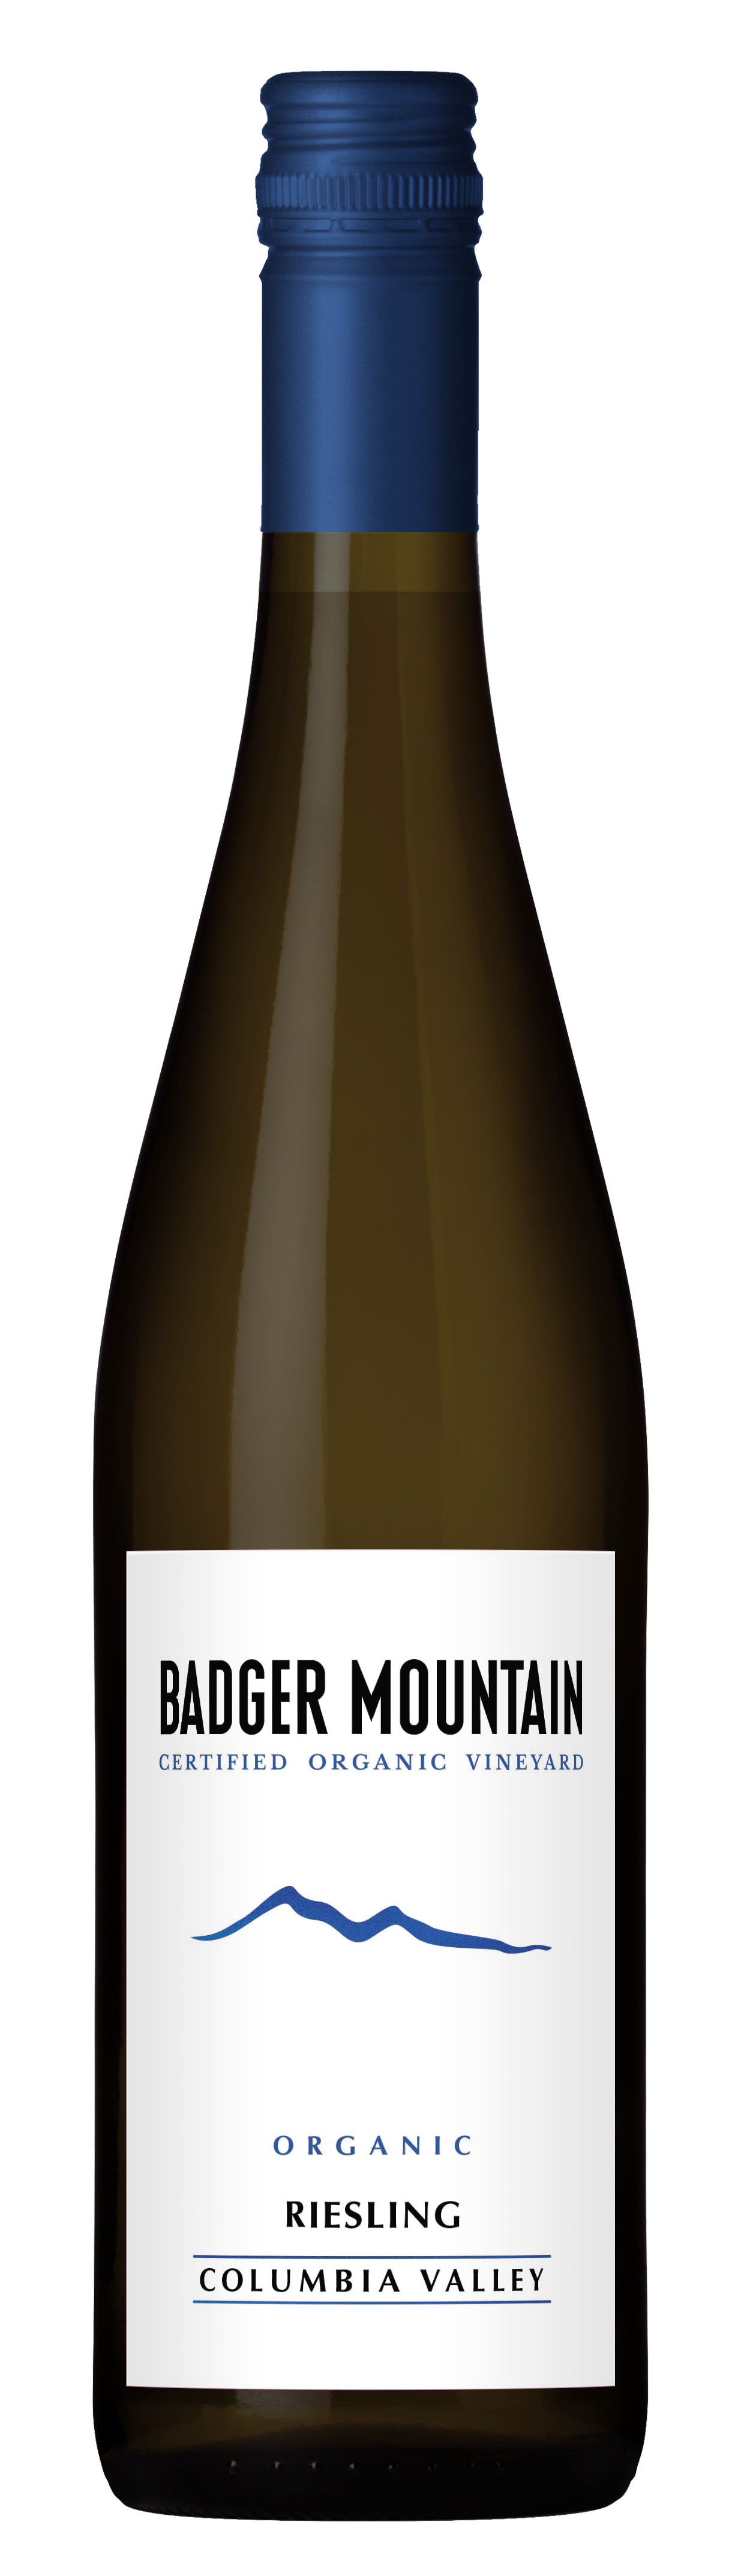 New Release! 2019 Badger Mountain Riesling, USDA Organic, No Sulfites Added